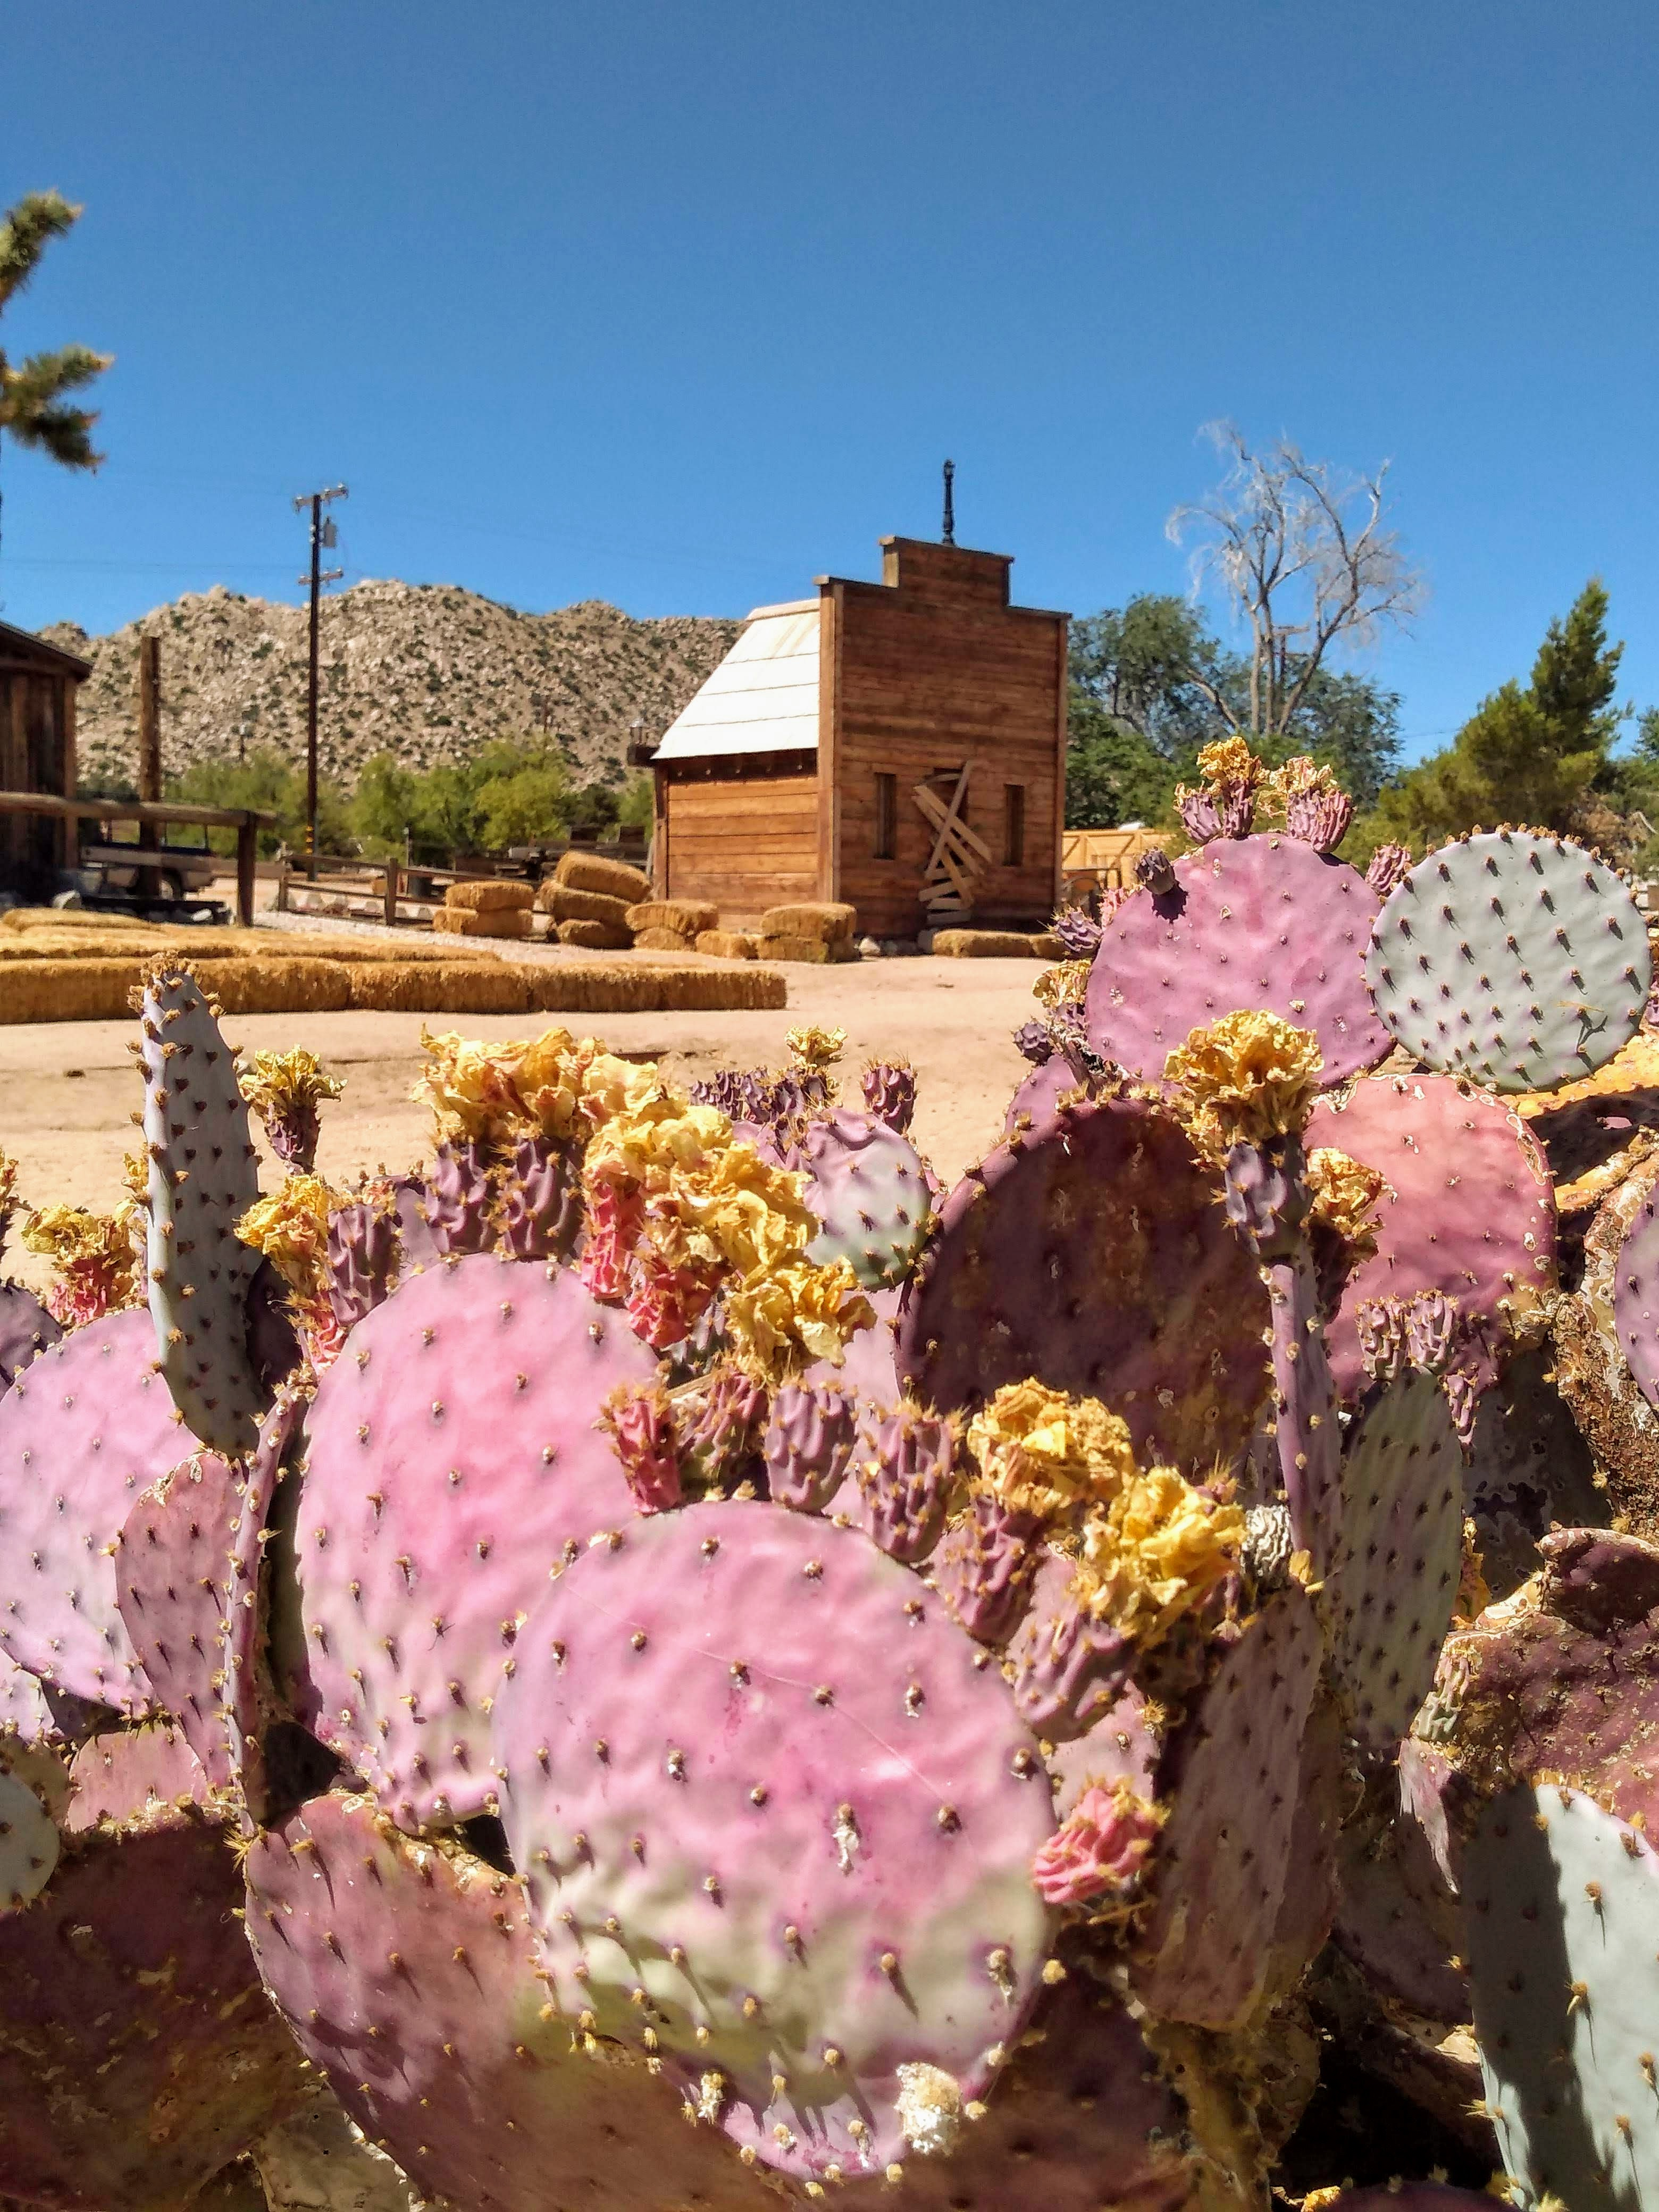 tiny travel chick unique things to do in southern california pioneer town cactus